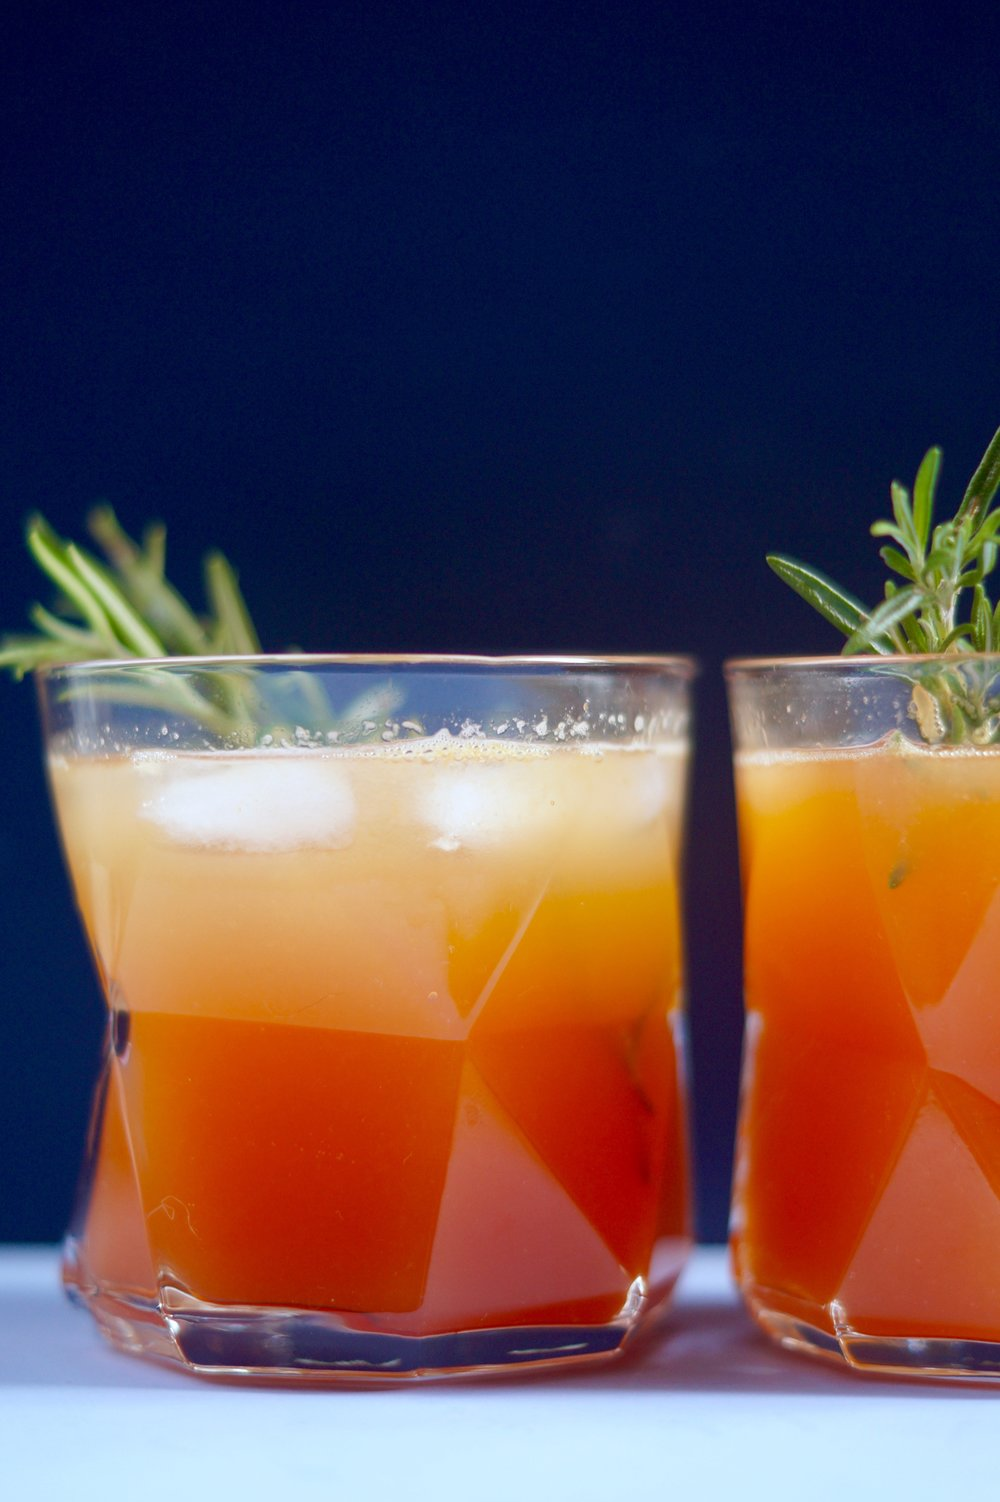 blood orange & rosemary.jpg